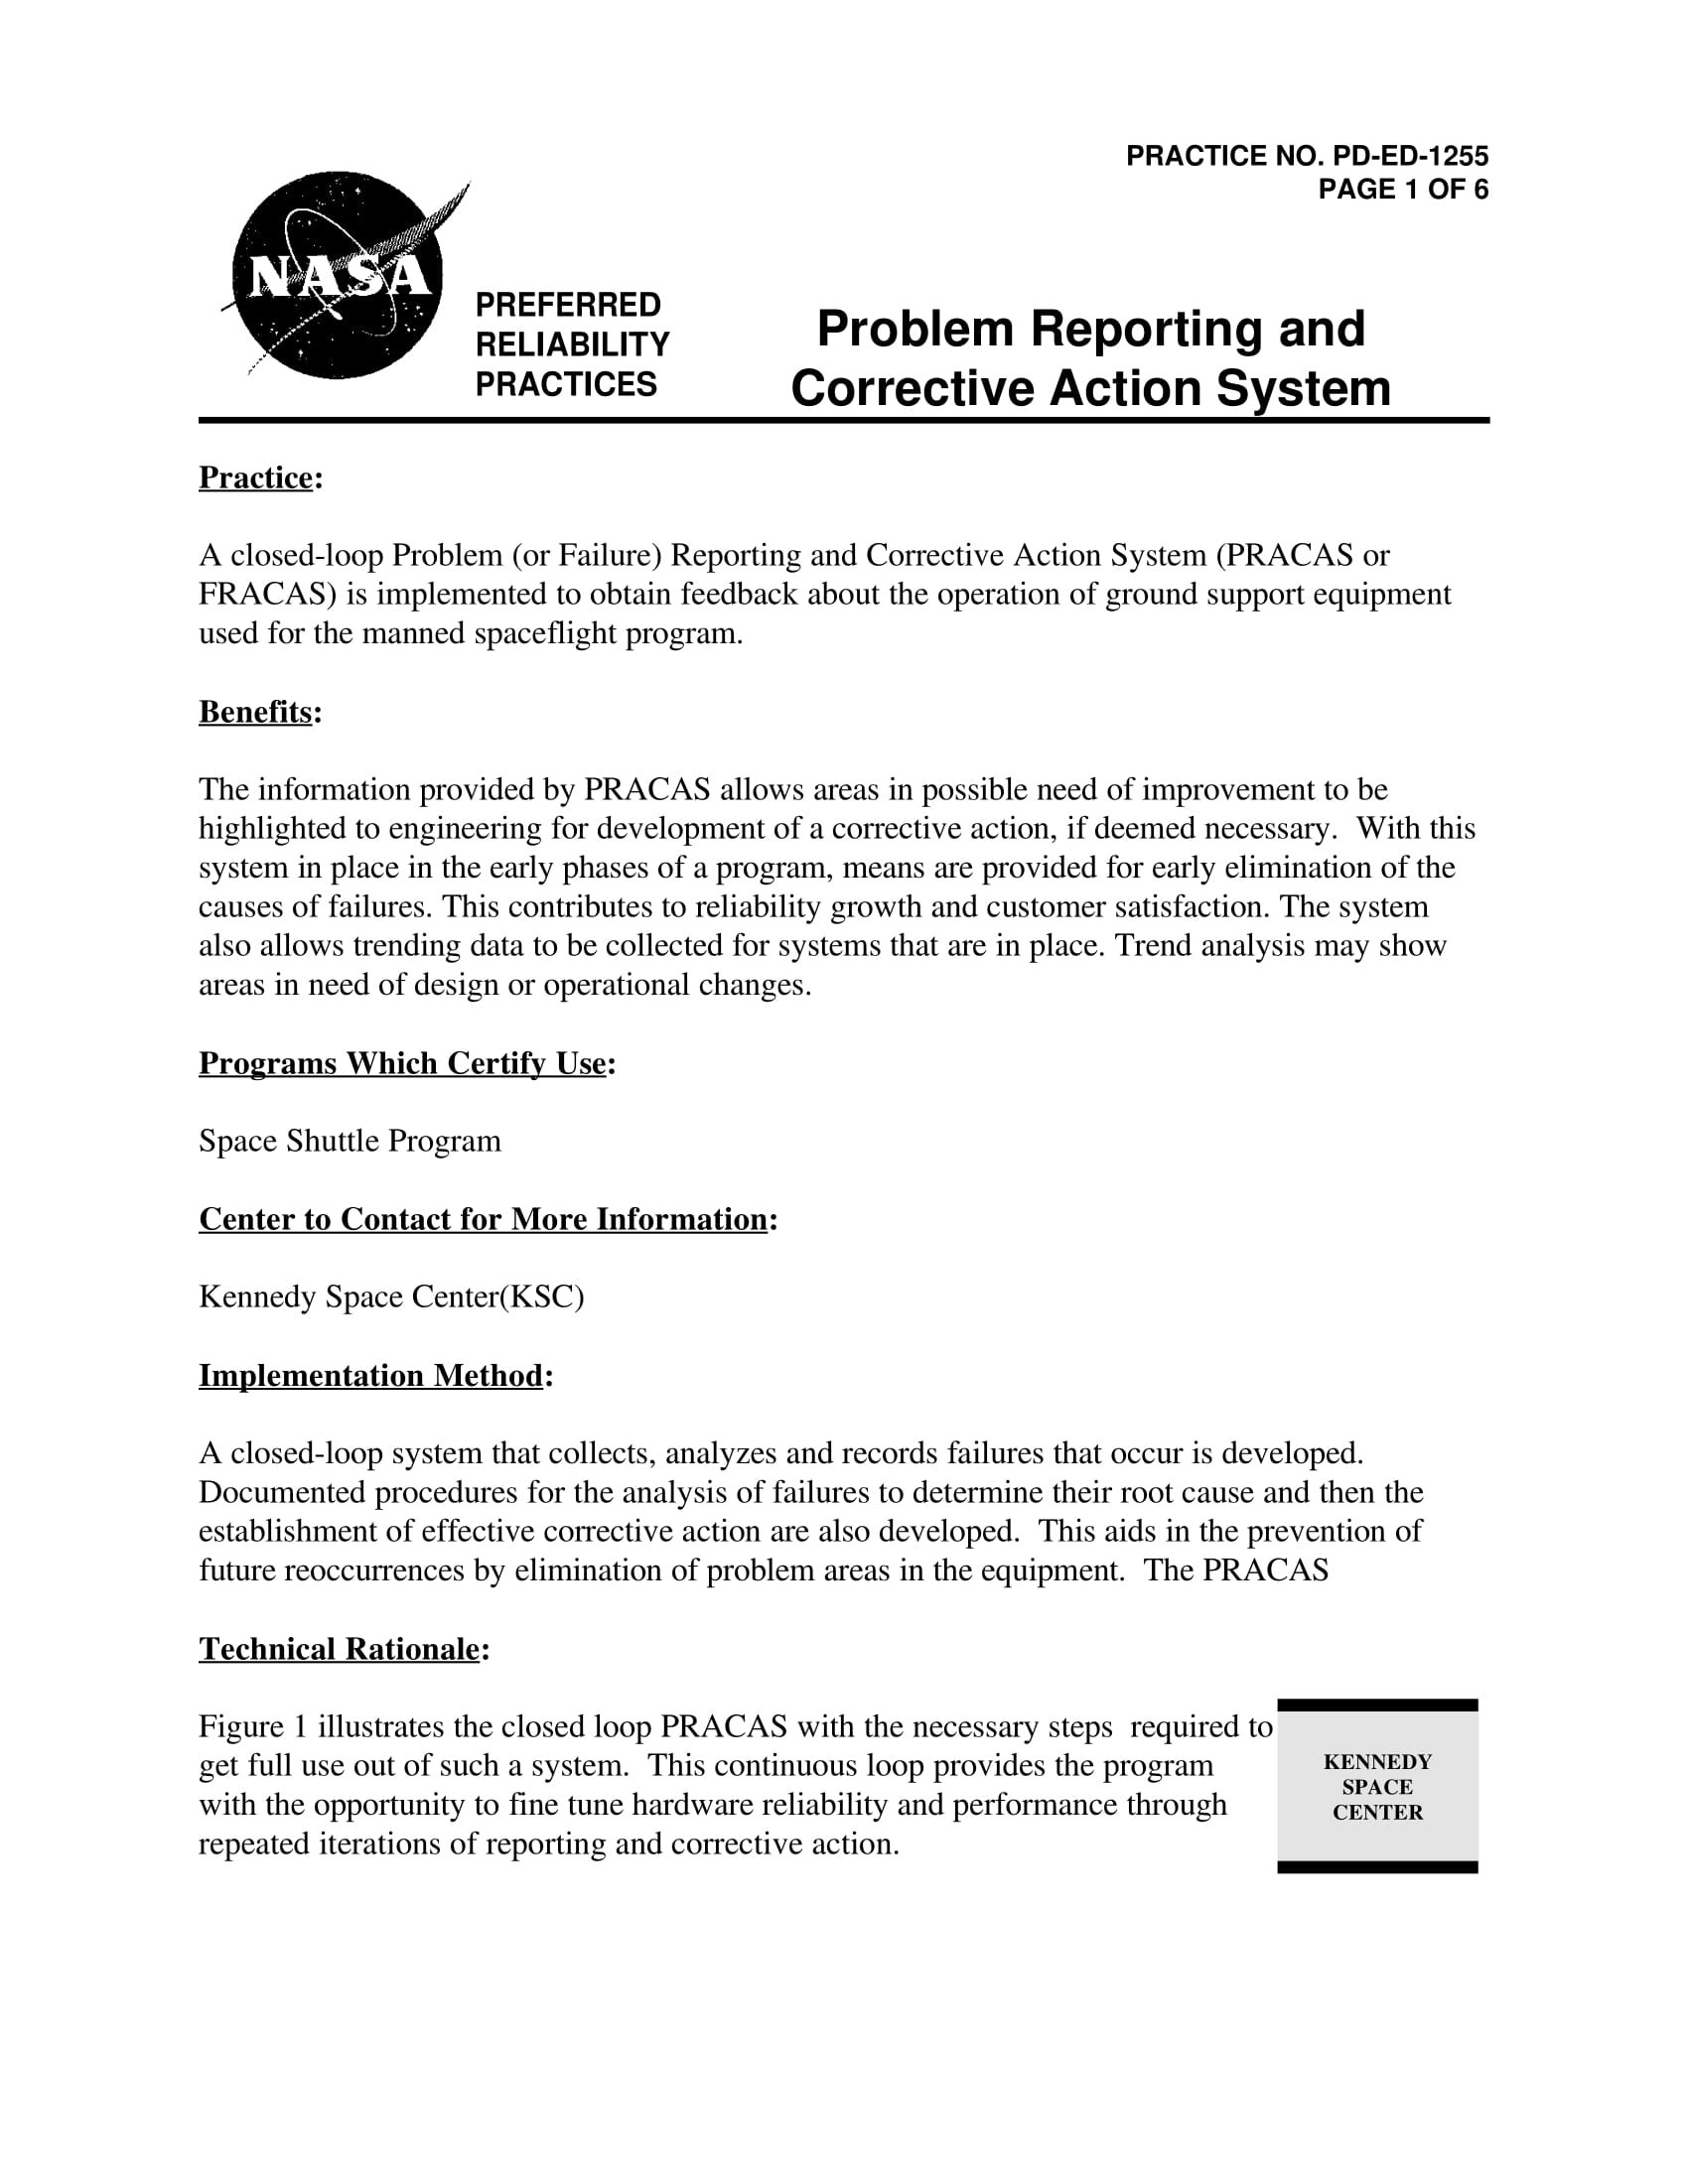 Corrective Action Report Examples  Pdf  Examples For Fracas Report Template